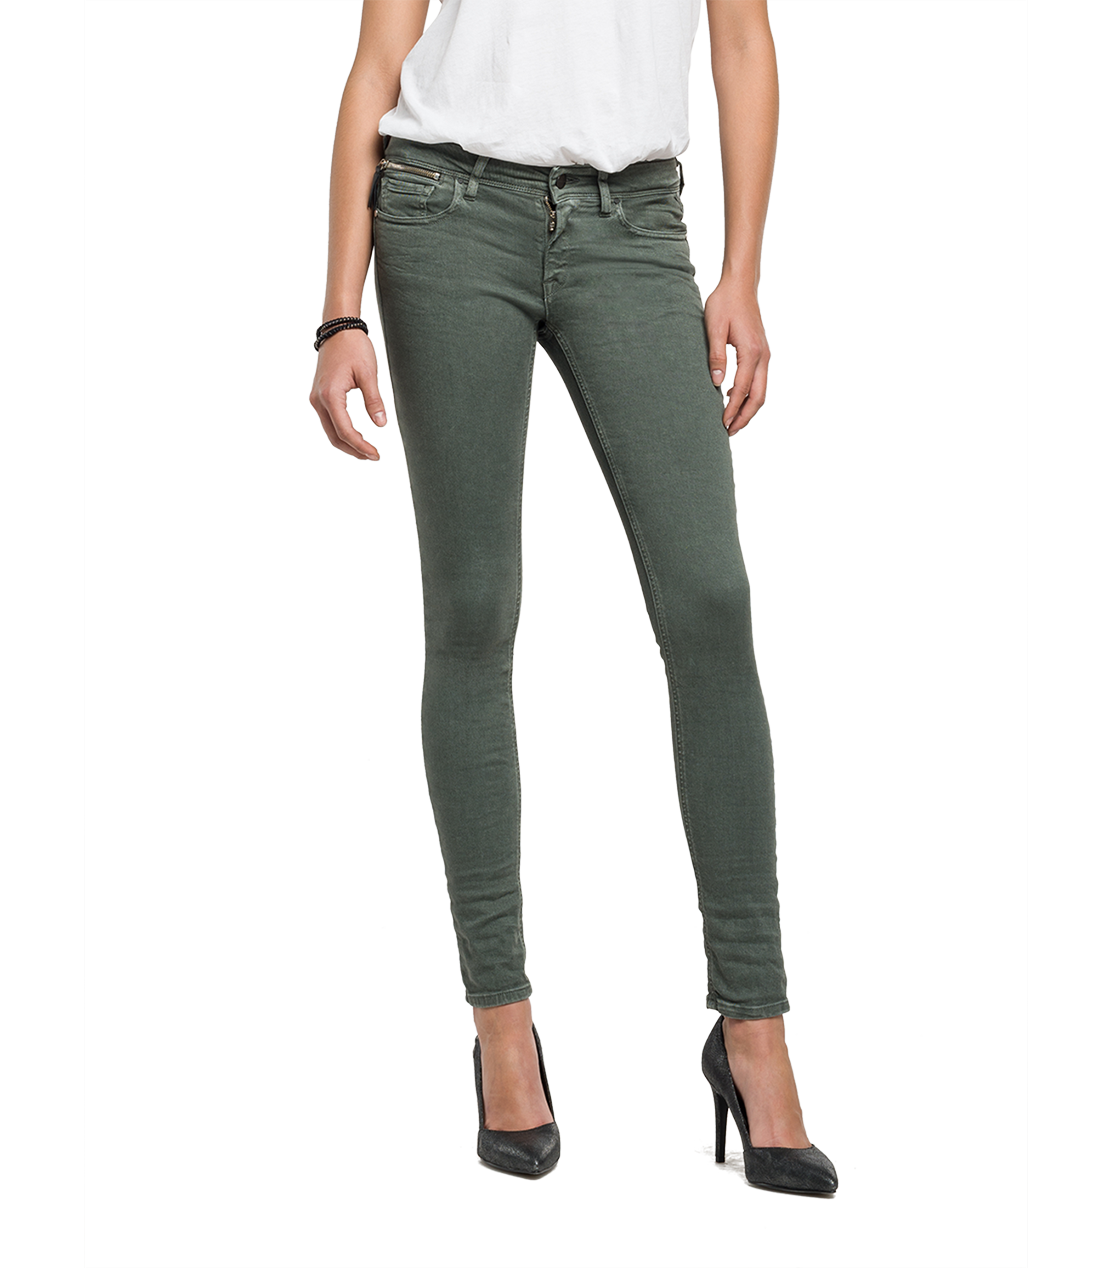 Replay-Jeans Skinny Fit Luz  Inch 30 31 Länge 32